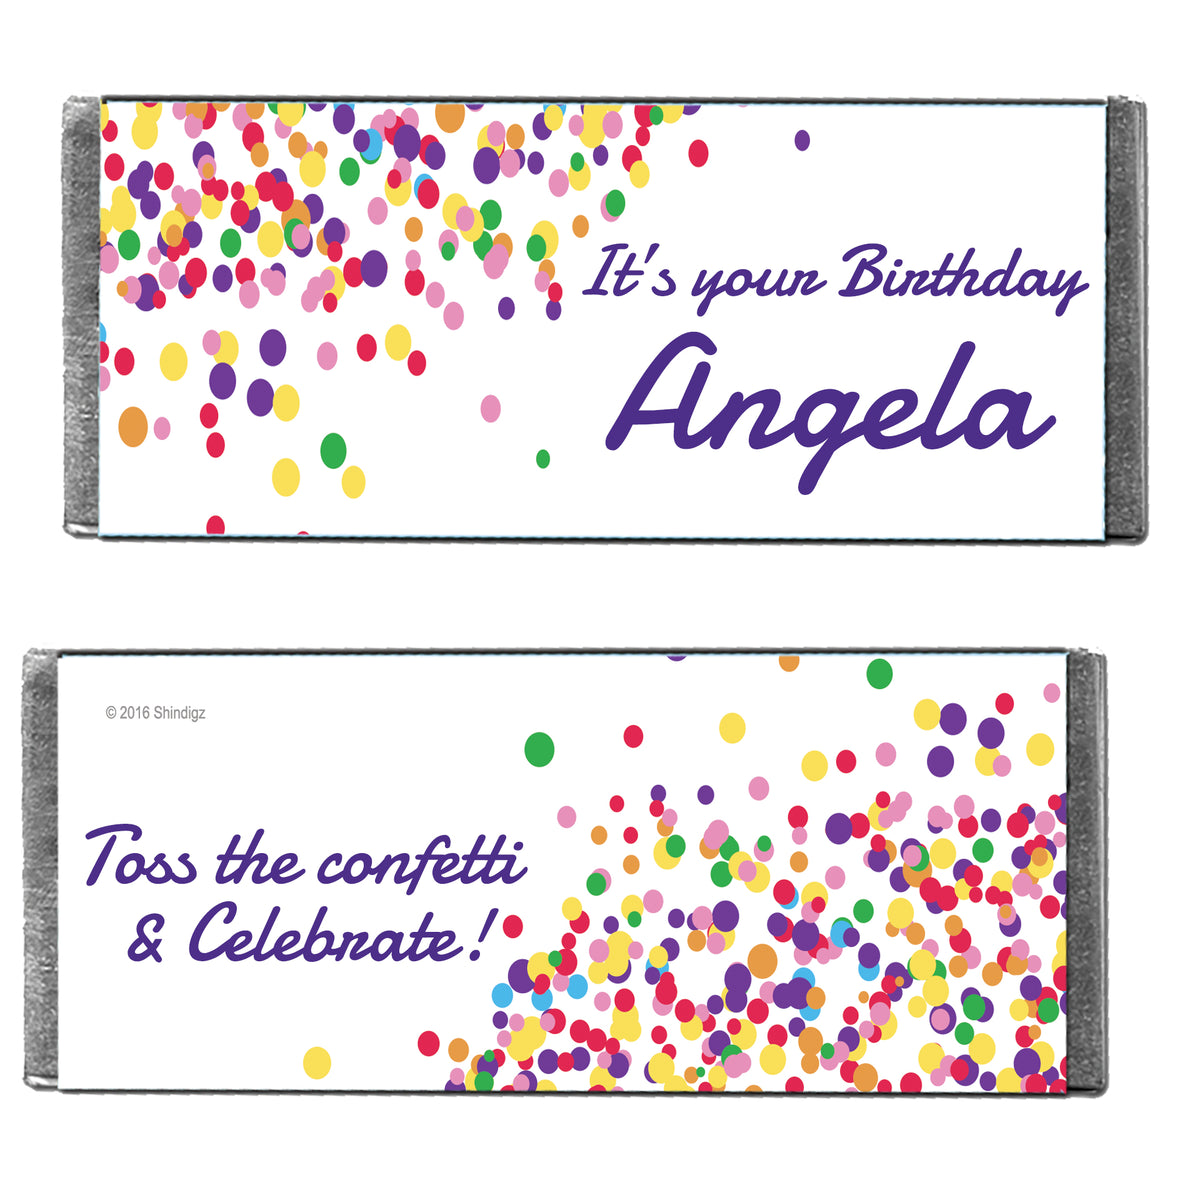 Hershey's Chocolate Sprinkled With Fun Personalized Candy Bars